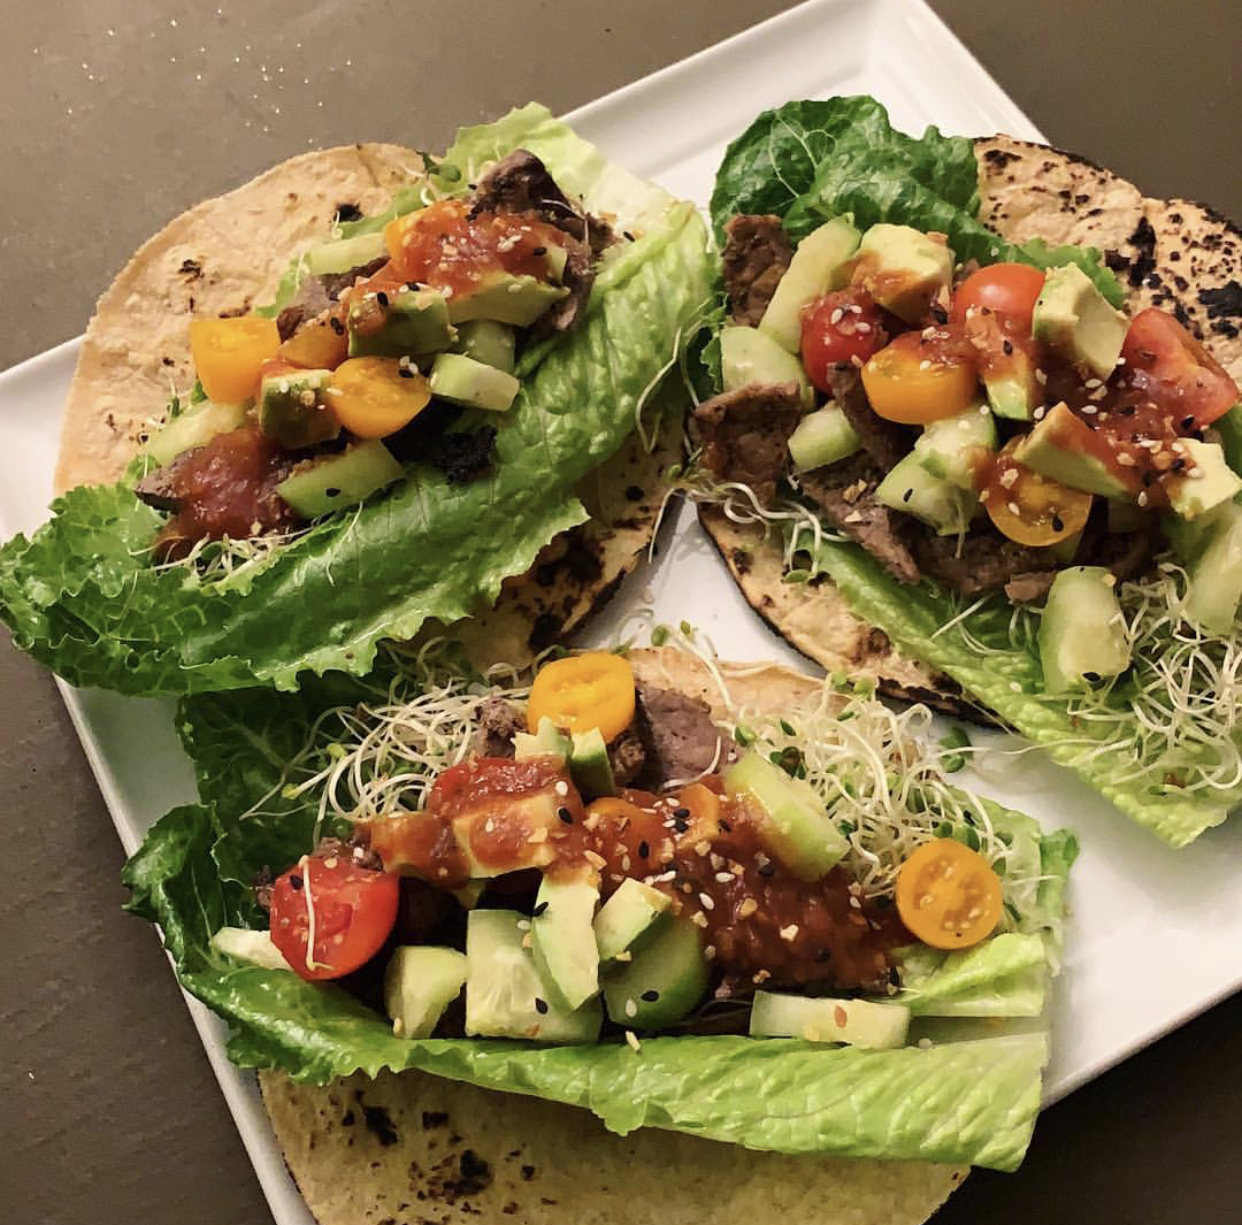 P.S. If you would like this recipe to these Steak Tacos…. Feel free to click on the picture and you will be taken right over to it! :)